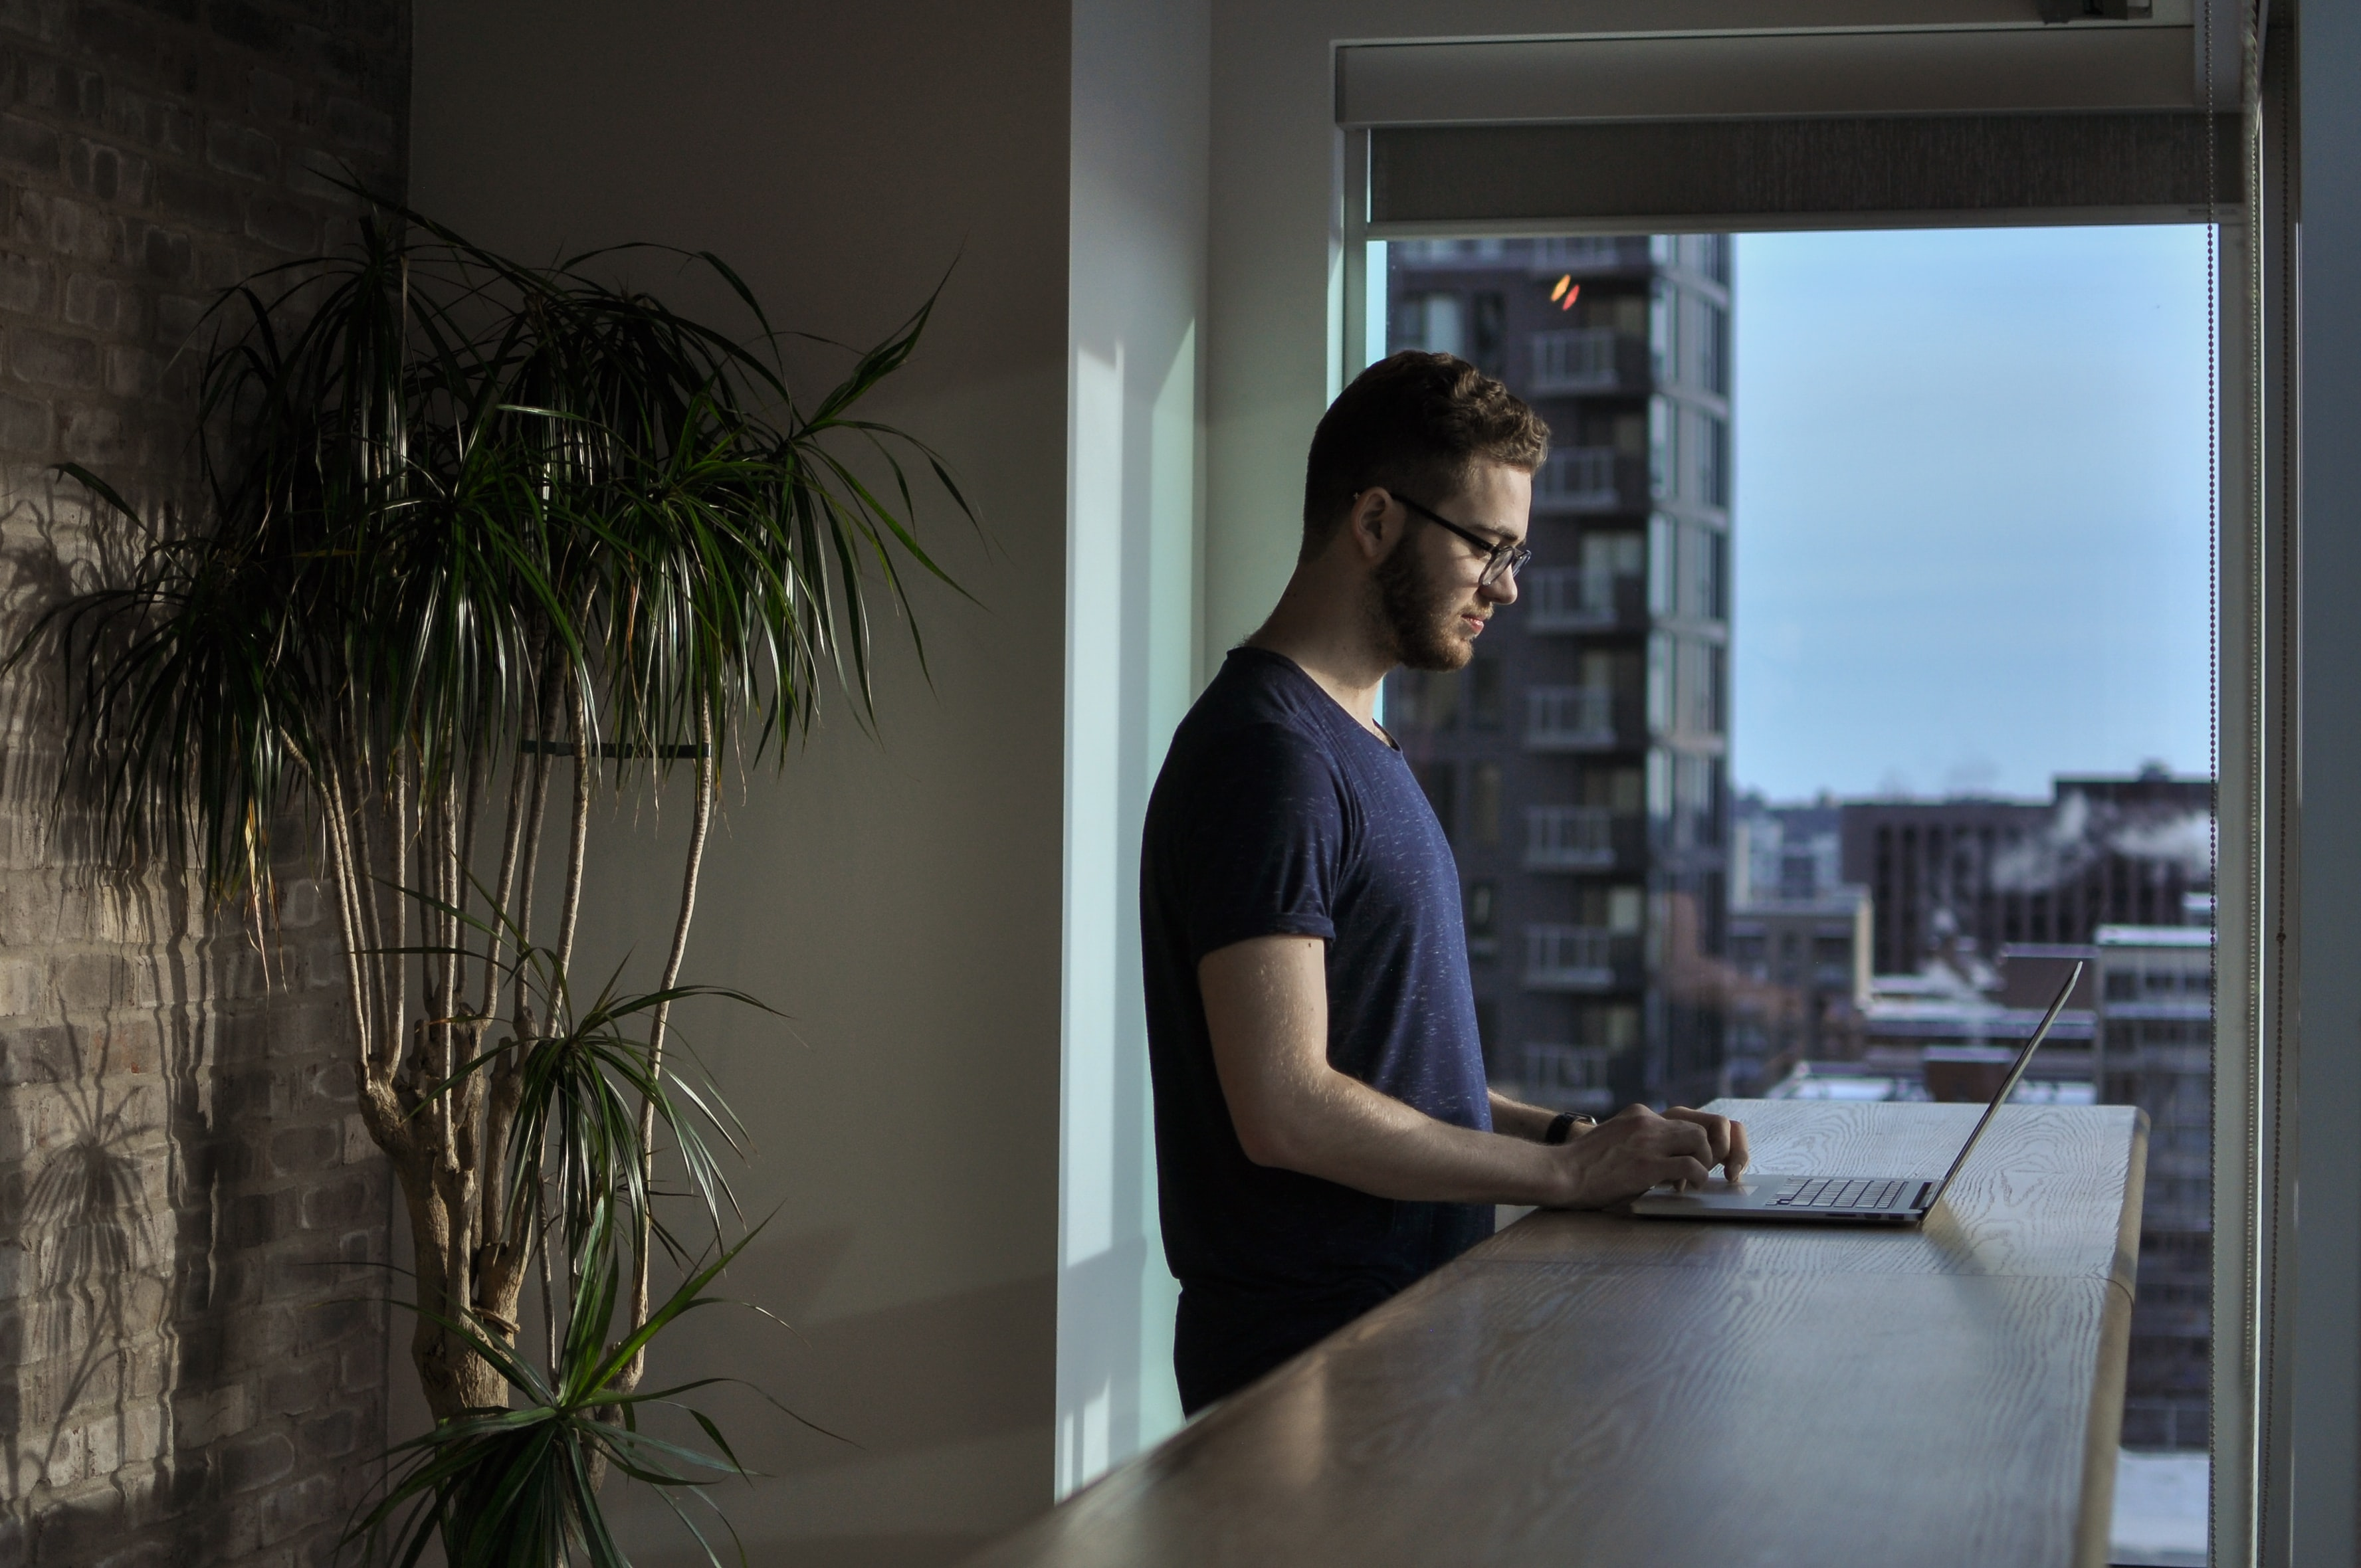 Man Stands at a Wooden Home Countertop While Using a Laptop in Front of a Floor to Ceiling Window